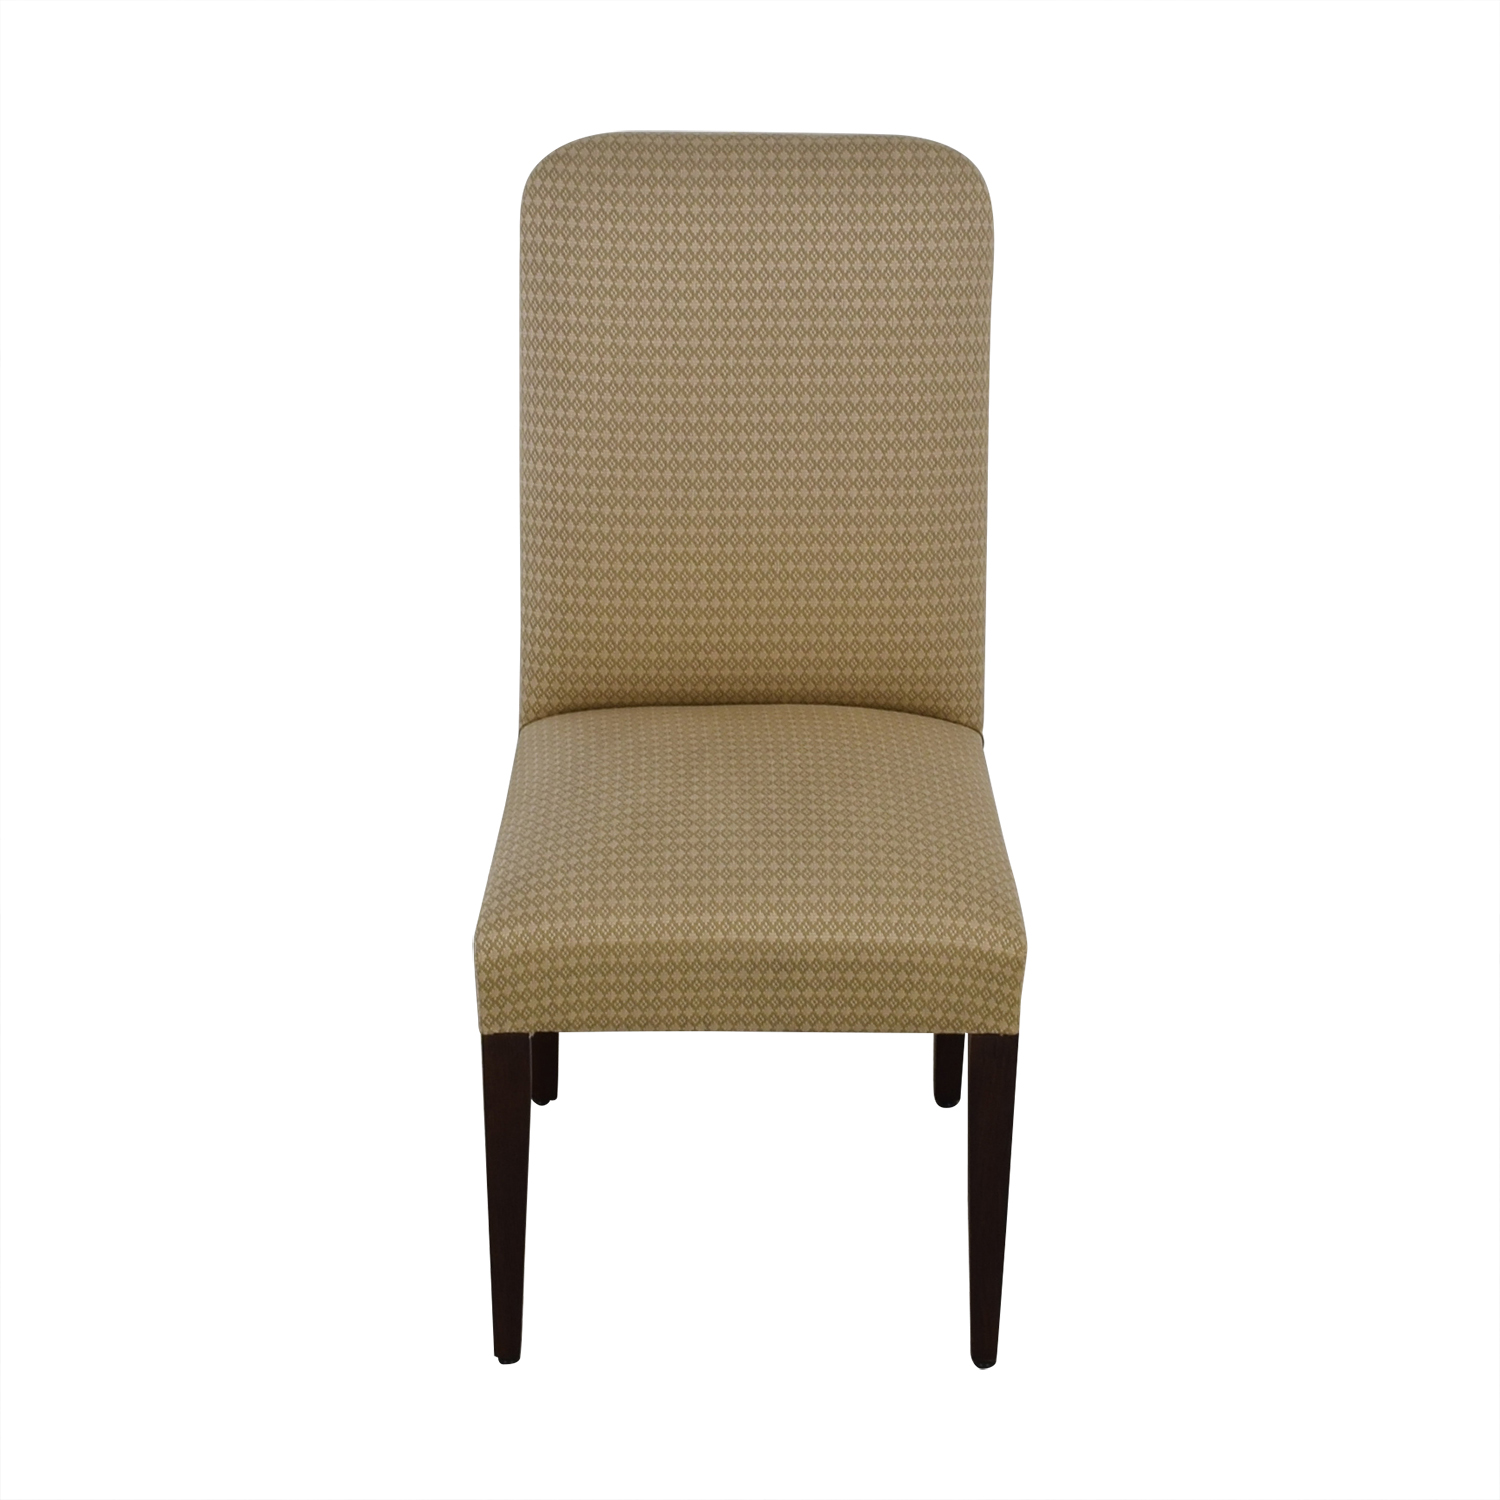 Furniture Masters Furniture Masters Tan Accent Chair for sale